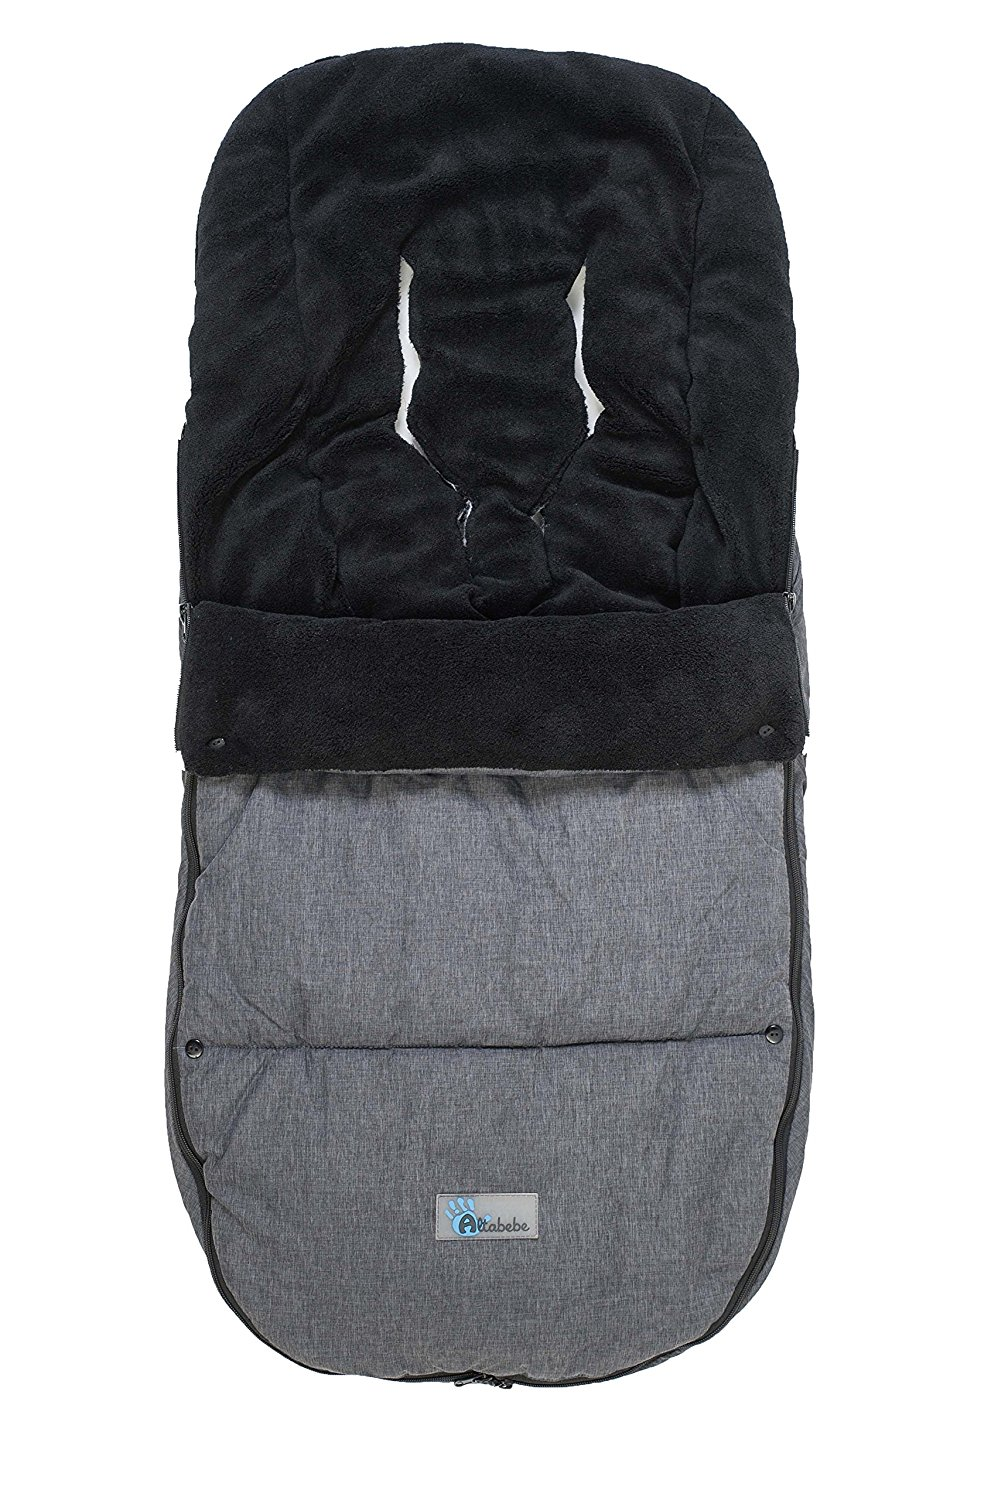 Зимний конверт - AL2280P Alpin Bugaboo, dark grey/blackЗимние конверты<br>Зимний конверт - AL2280P Alpin Bugaboo, dark grey/black<br>